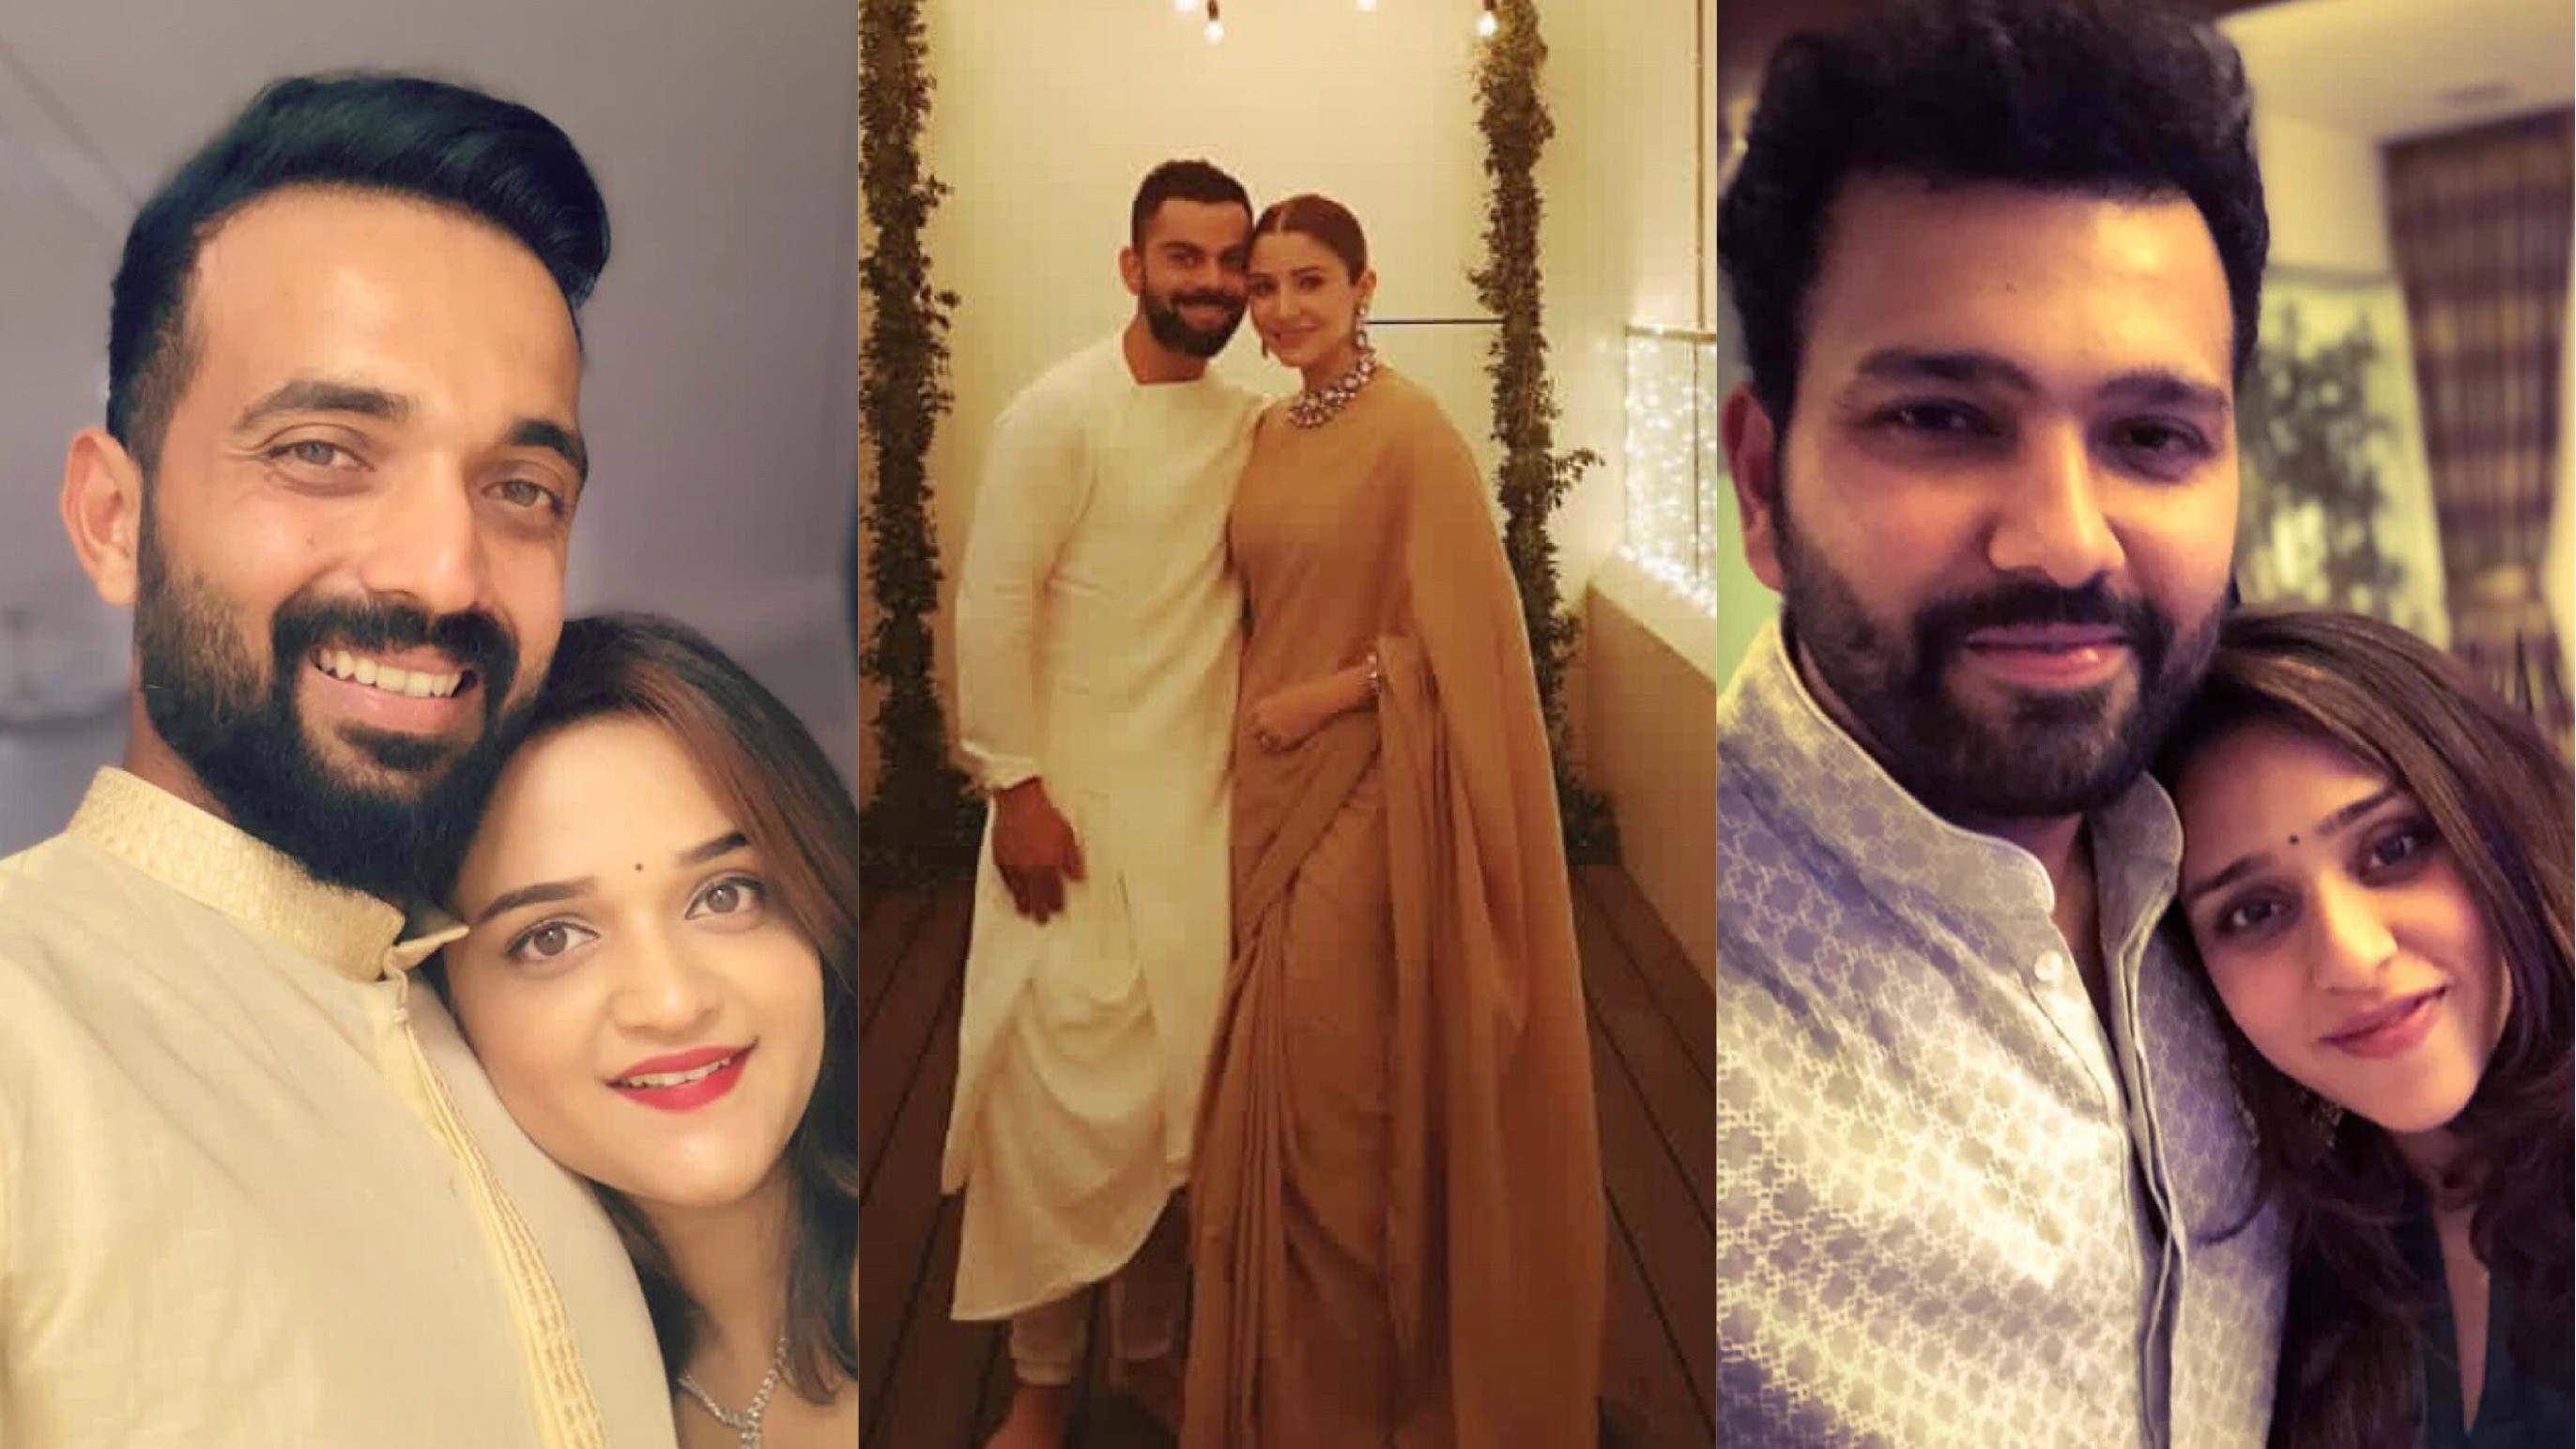 PICS: Indian cricketers celebrate the 'festival of lights' Diwali